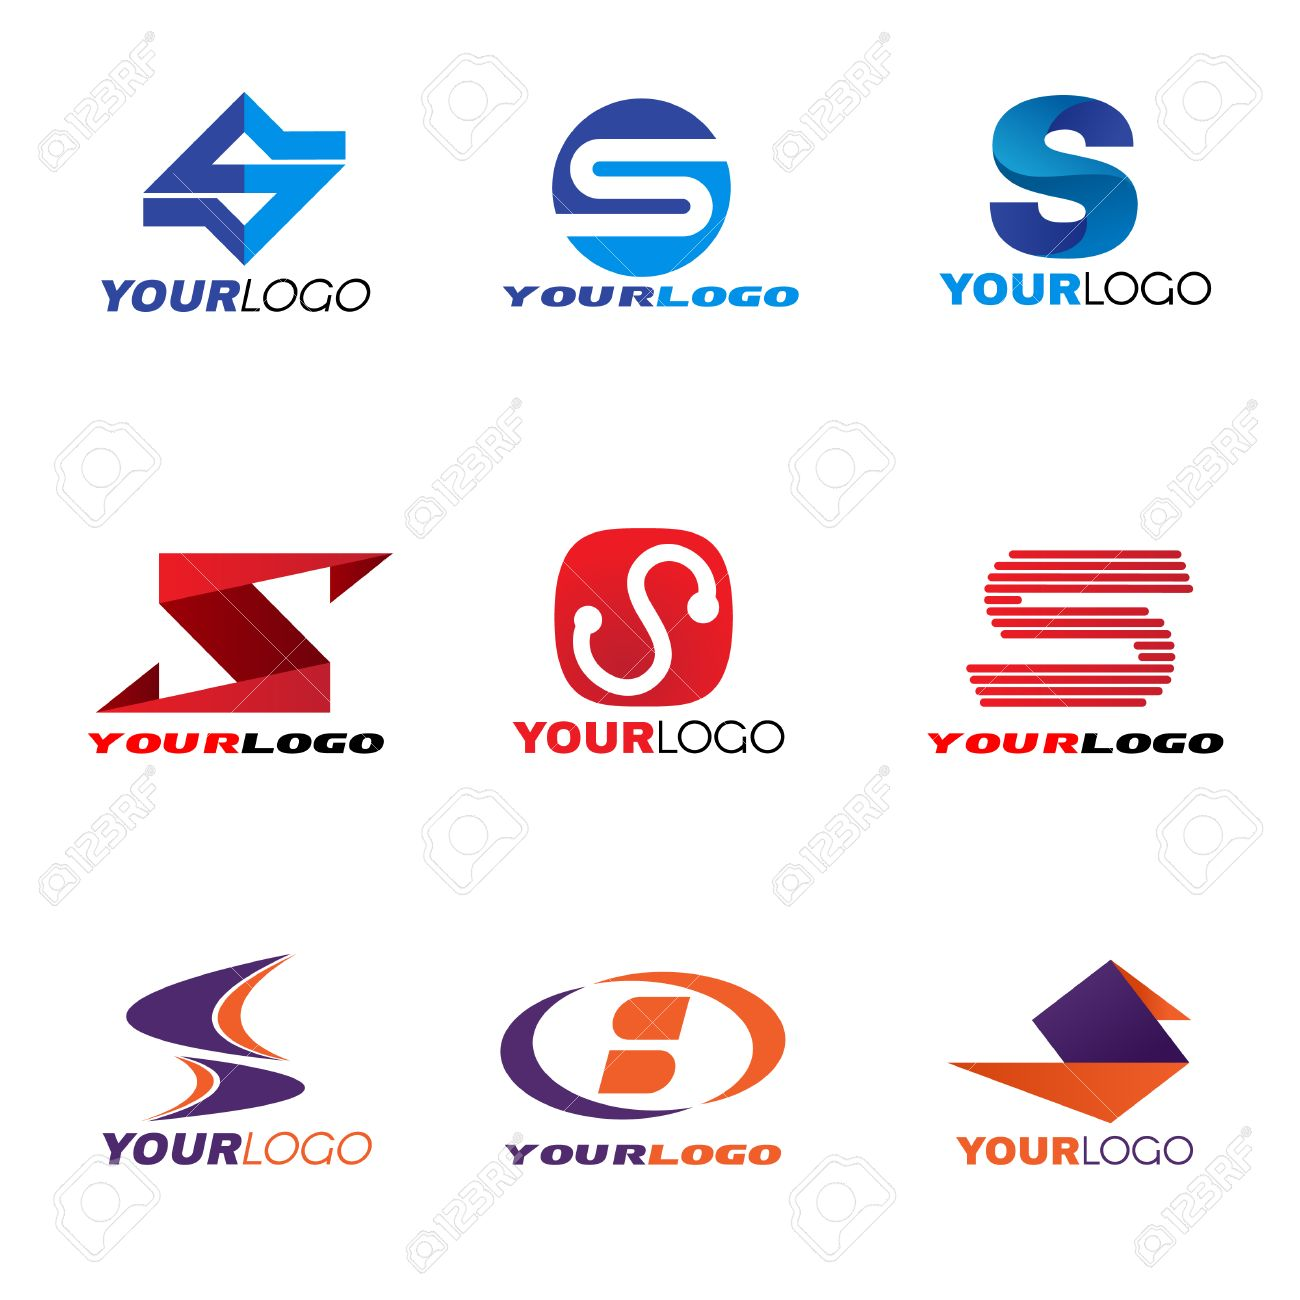 letter s logo vector set design royalty free cliparts vectors and